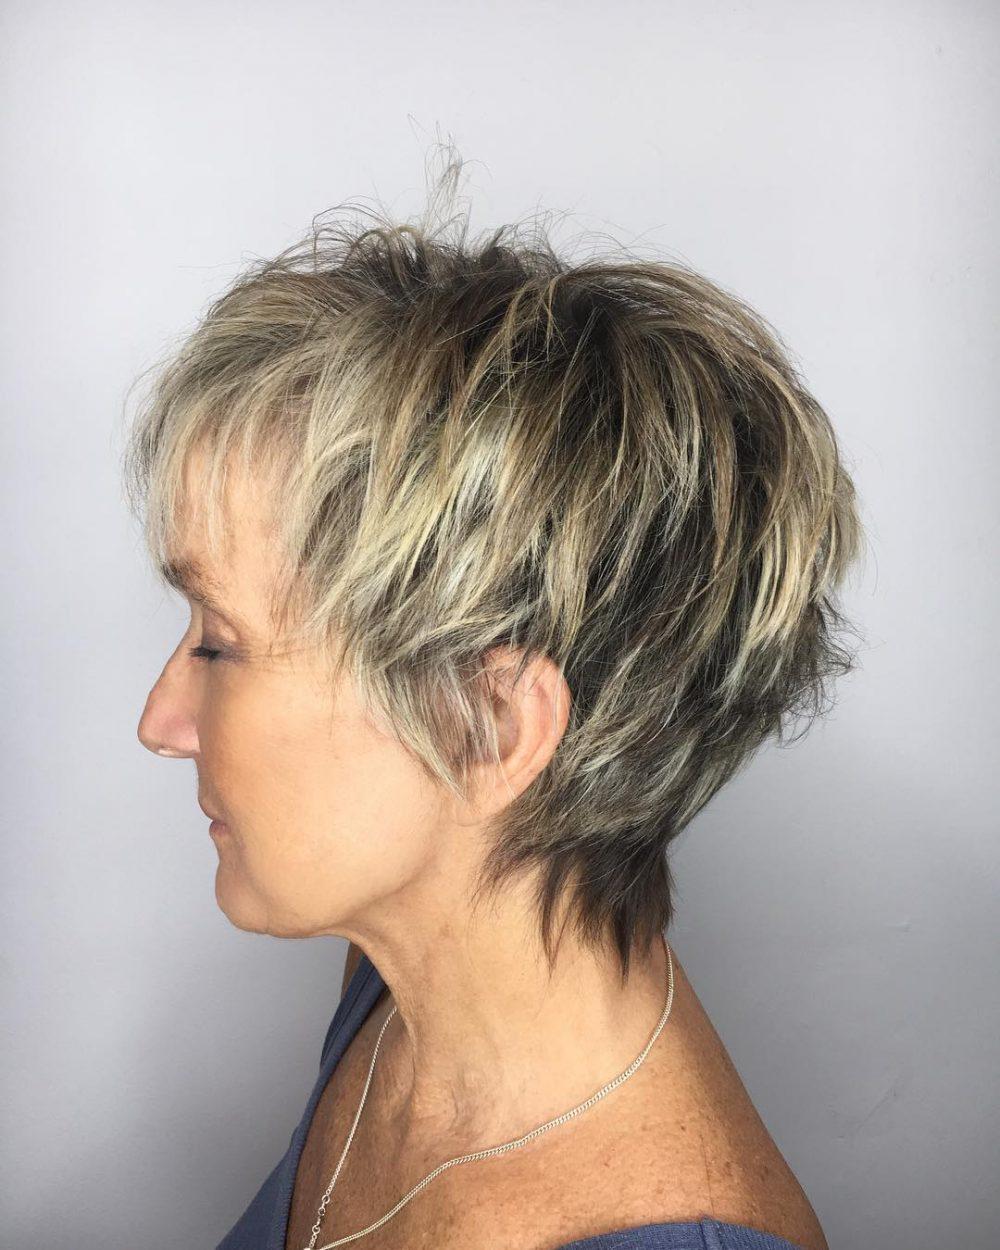 Choppy and Texturized Short Cut hairstyle